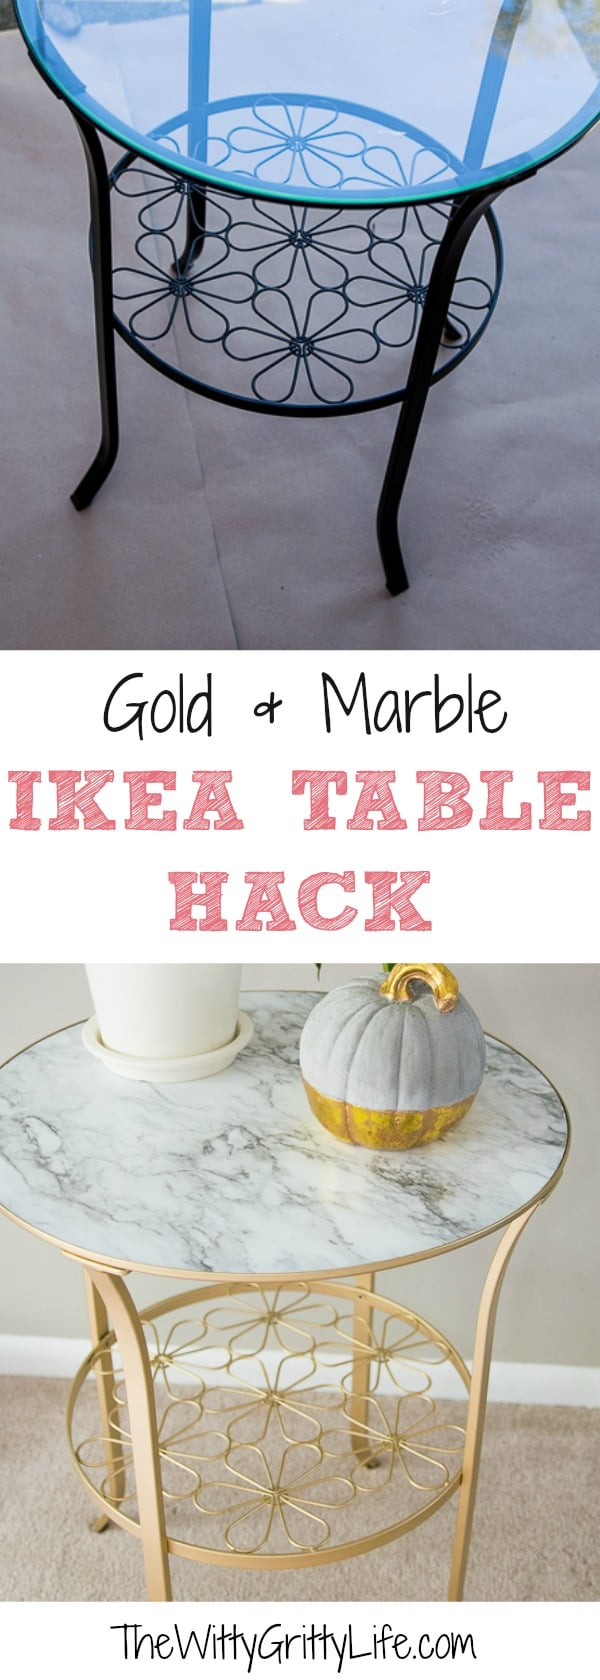 Let me show you how to upgrade with this easy furniture makeover that combines three of my favorite things: gold, marble and affordable Ikea furniture! This is a quick and simple Ikea hack even a beginner can DIY in an afternoon.